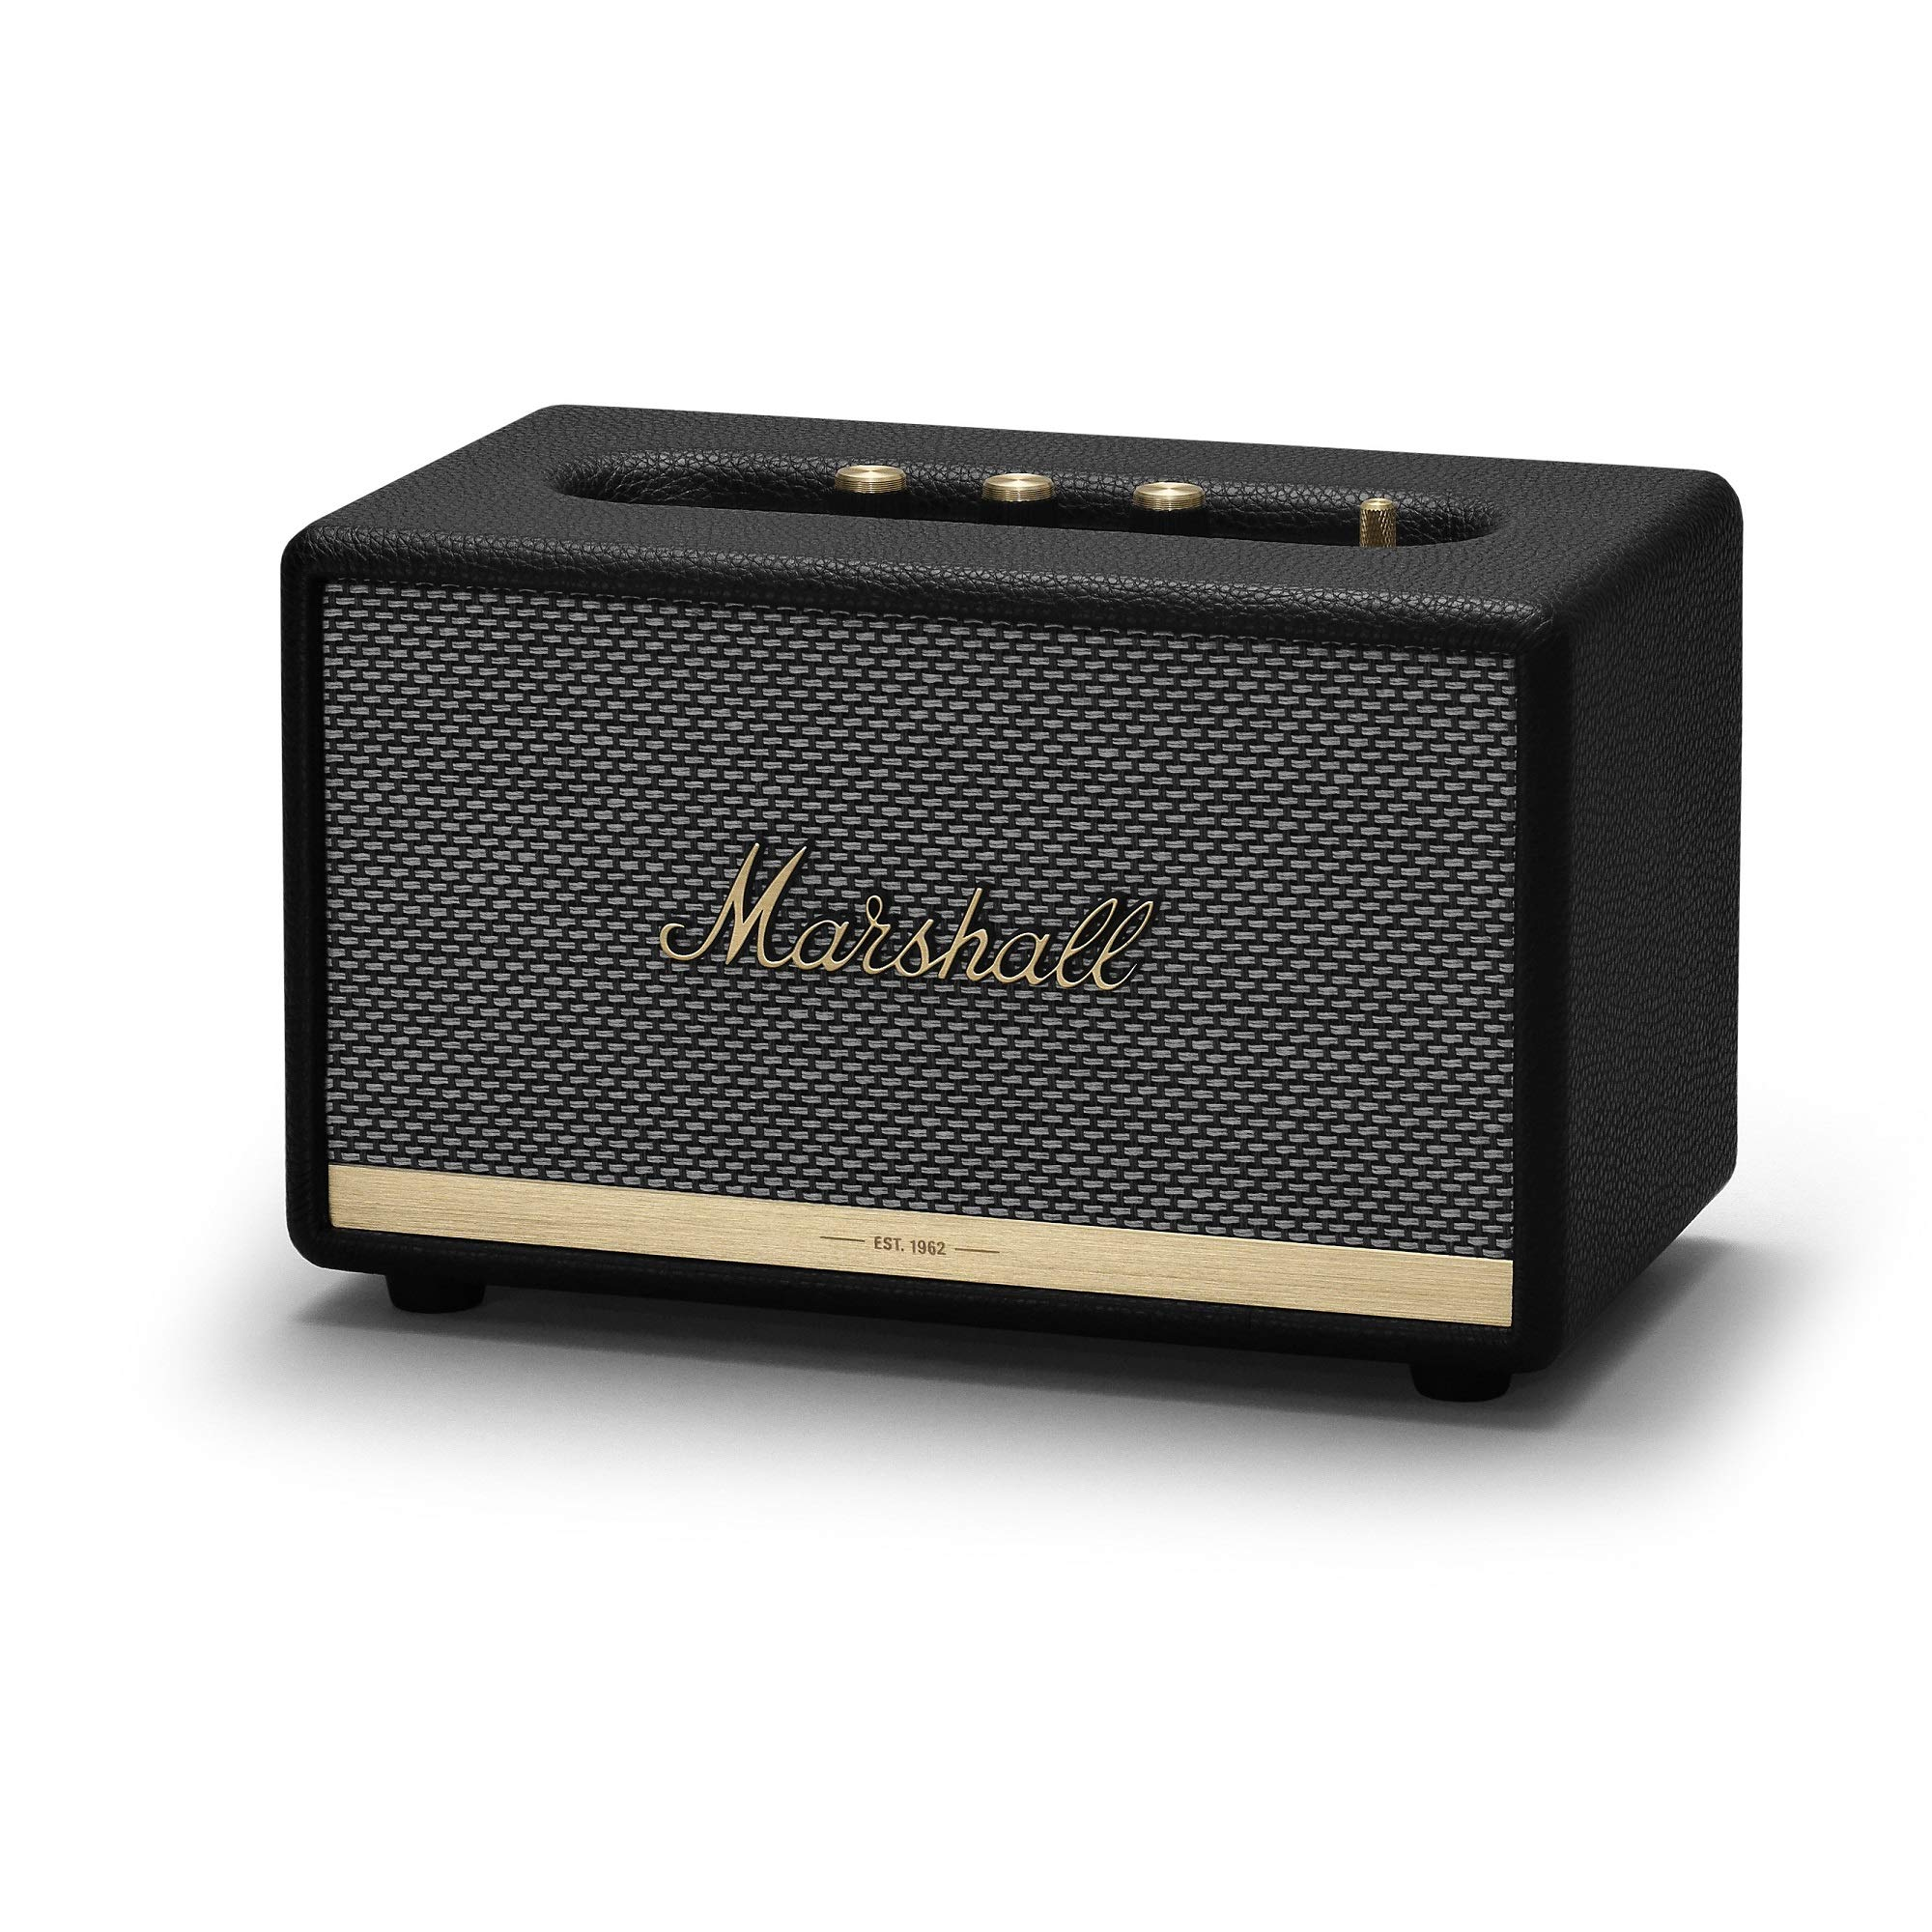 [NEW] 마샬 액톤 II 블루투스 스피커 - 블랙 Marshall Enceinte Bluetooth Acton BT II Noir